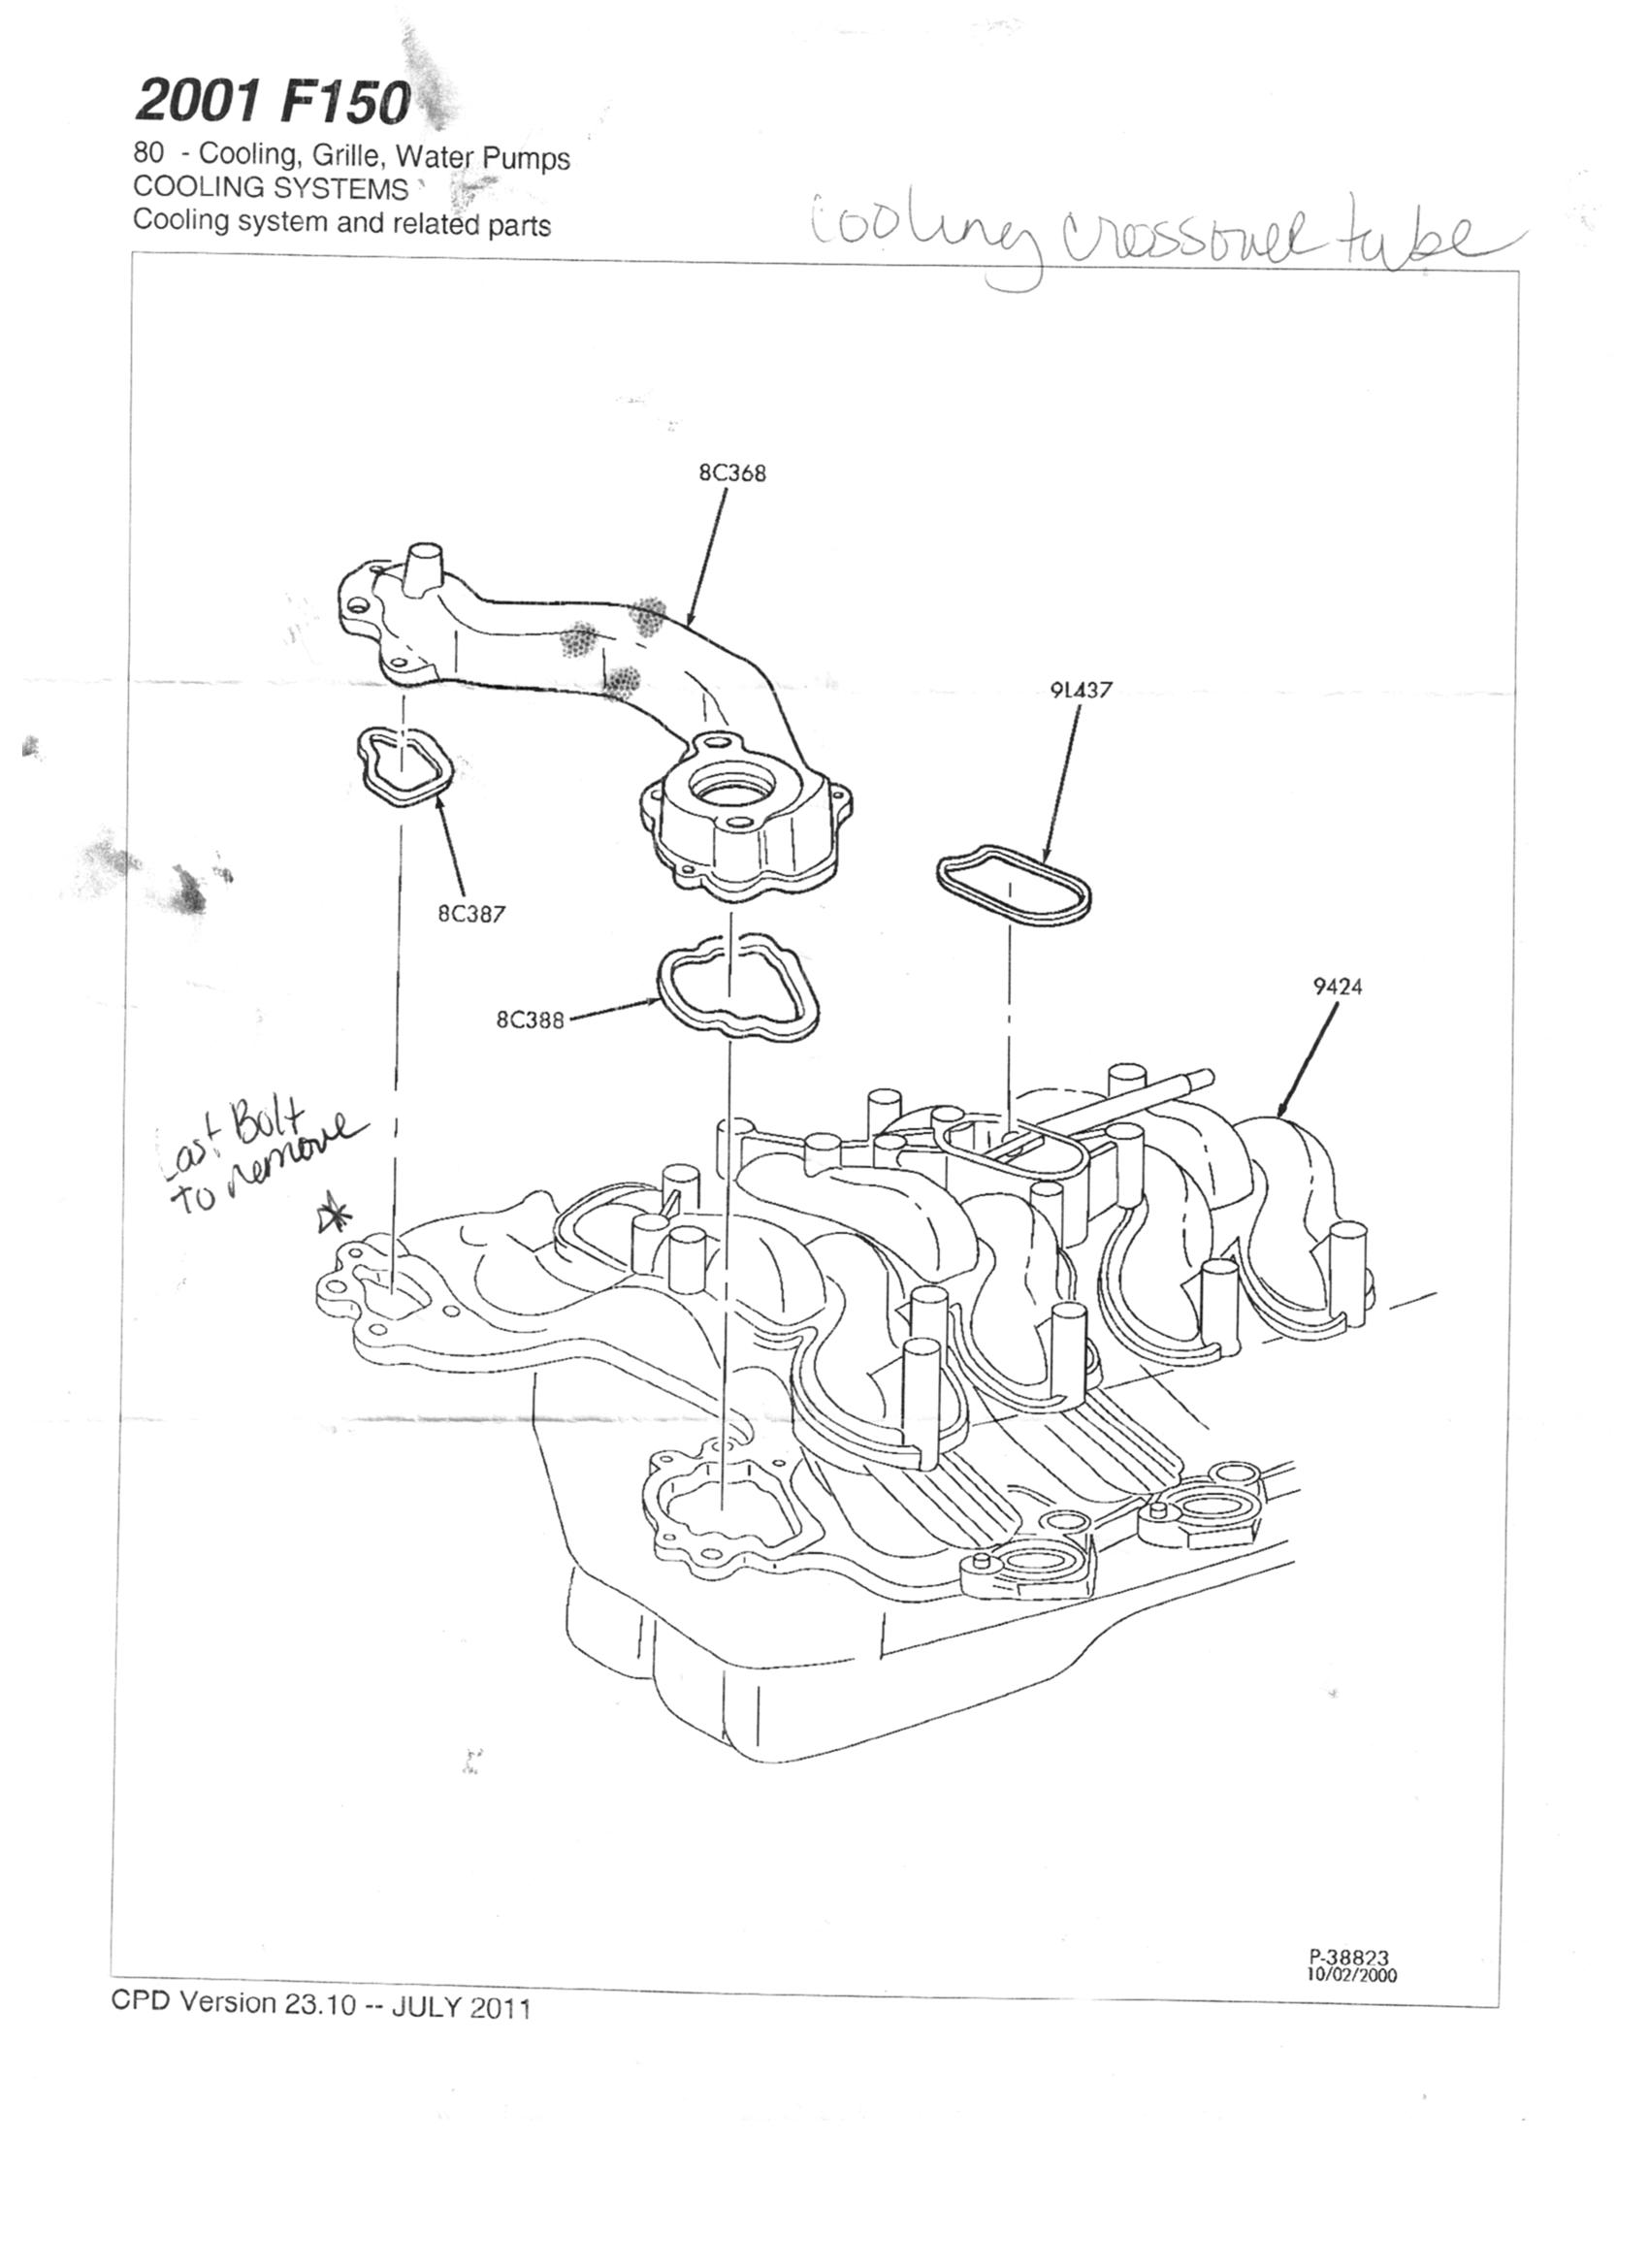 hight resolution of f150 5 4 engine diagram wiring diagram inside 2001 ford 5 4 engine diagram